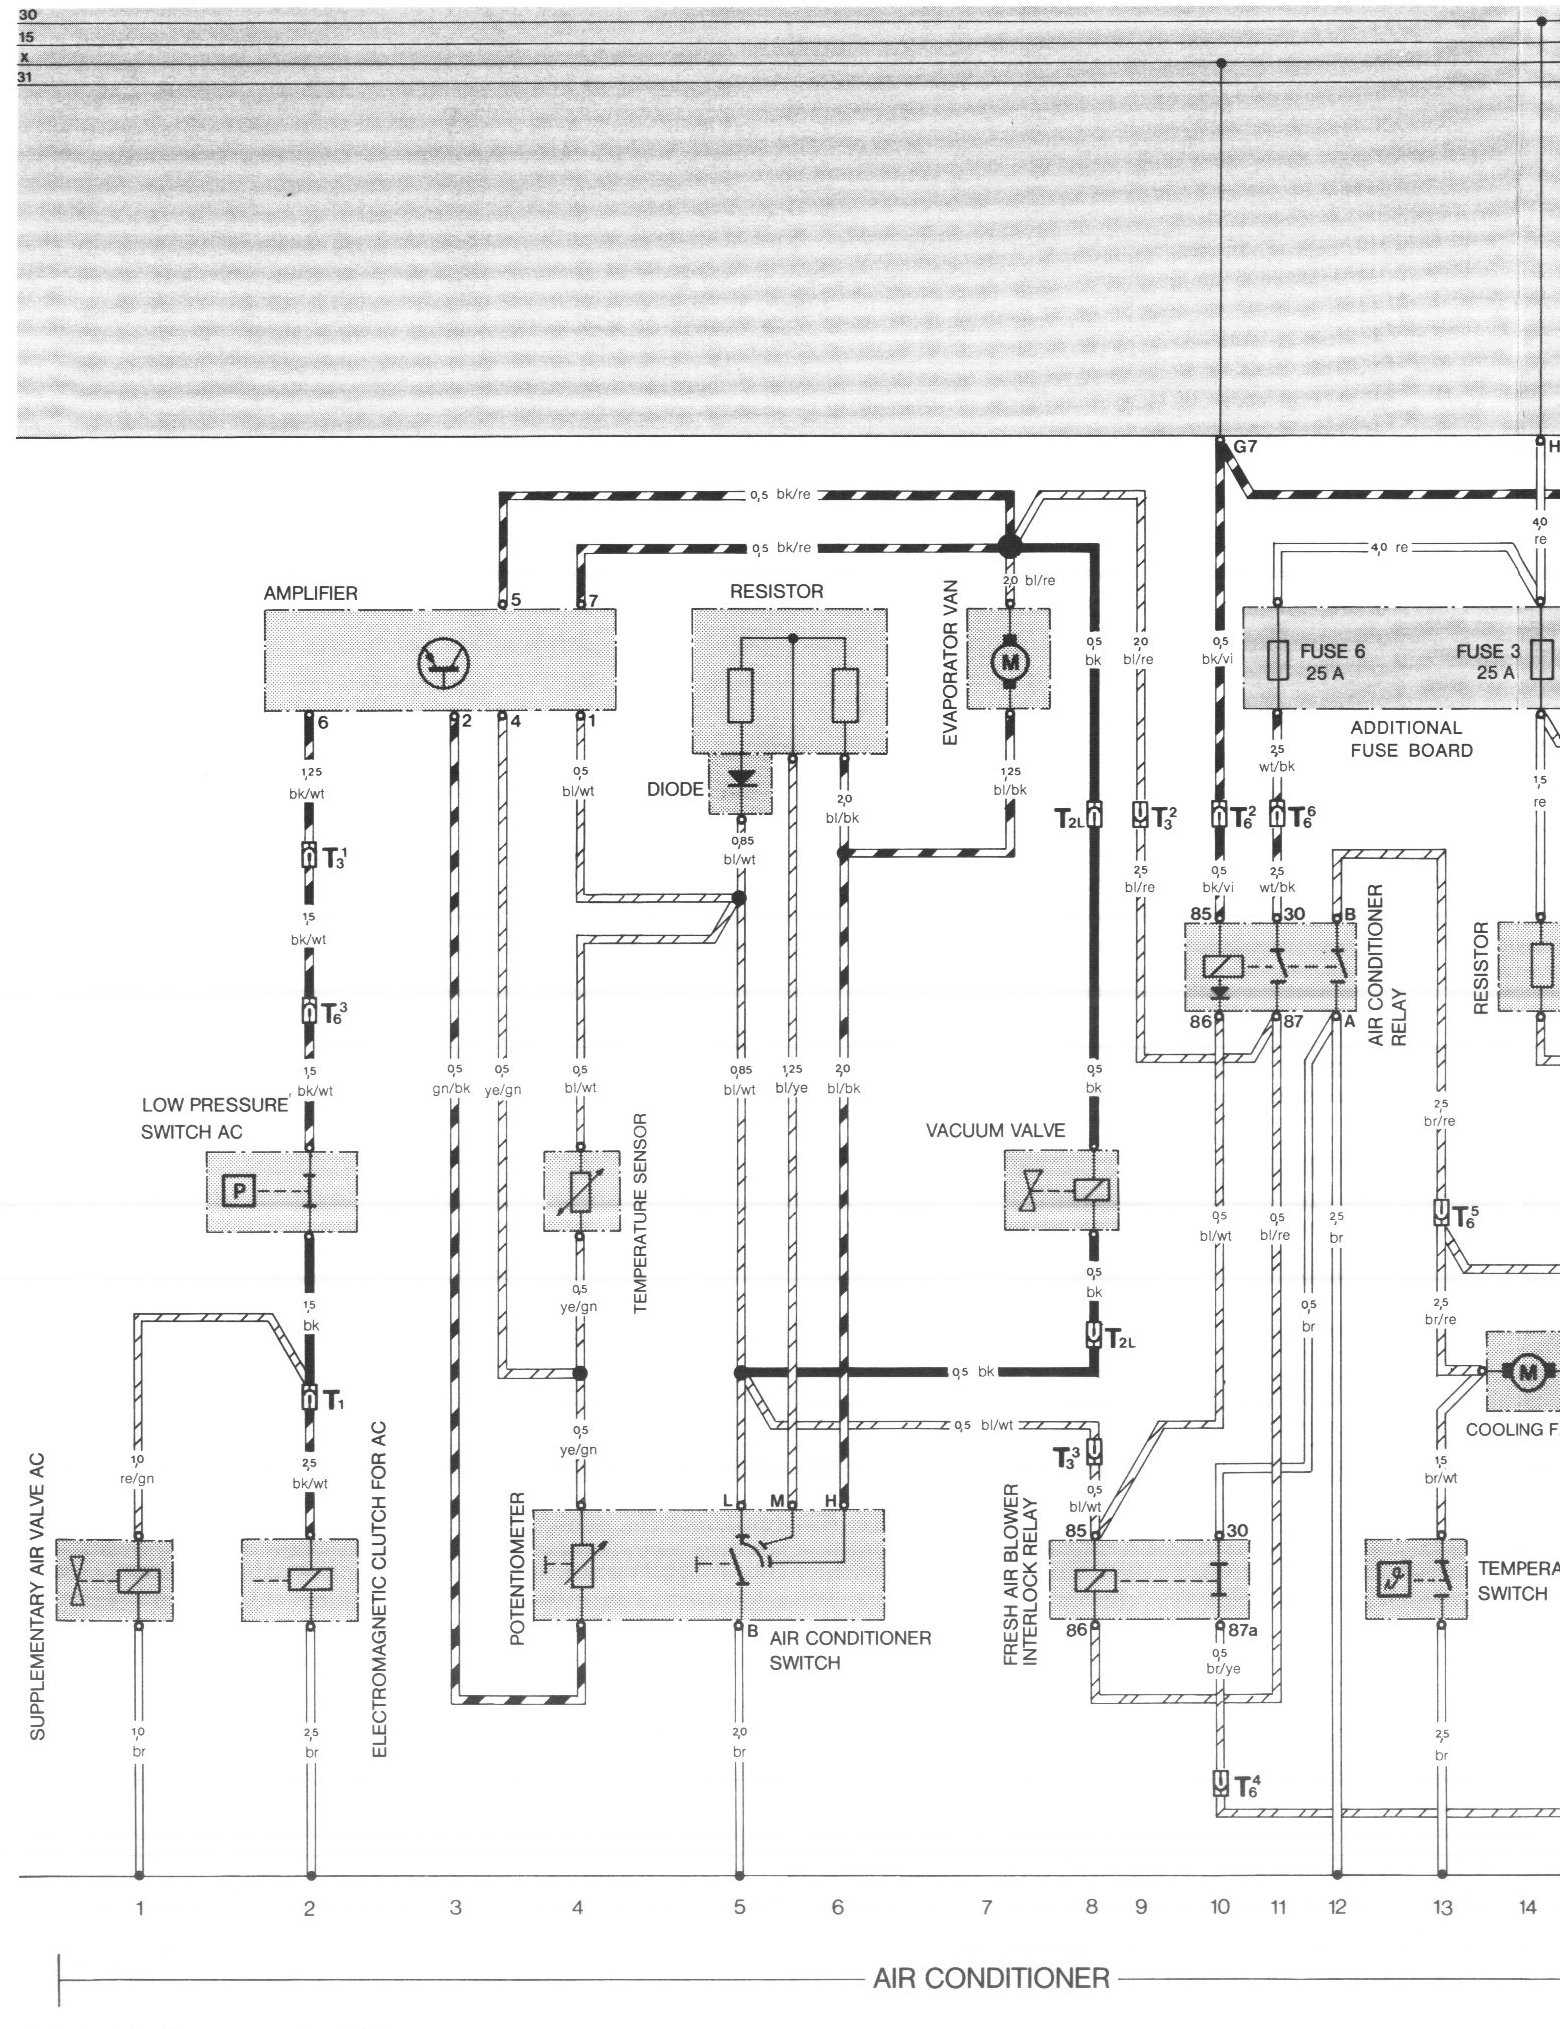 inverter compressor wiring diagram inverter image ac compressor wiring diagram wiring diagrams and schematics on inverter compressor wiring diagram